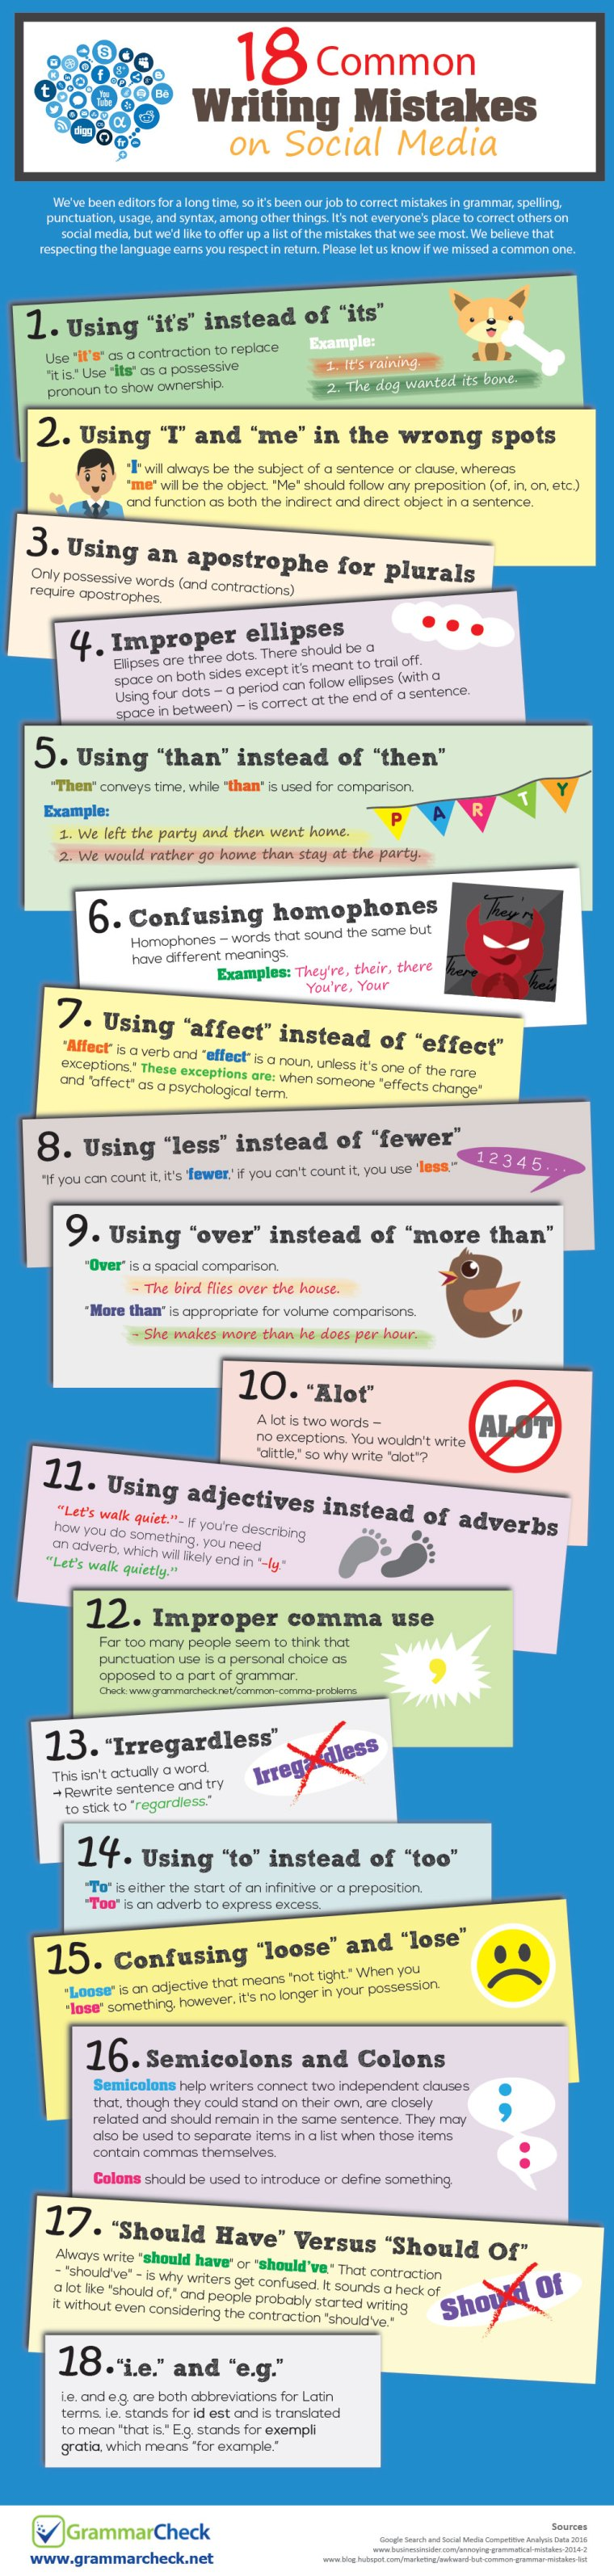 18 Common Writing Mistakes on Social Media (Infographic)